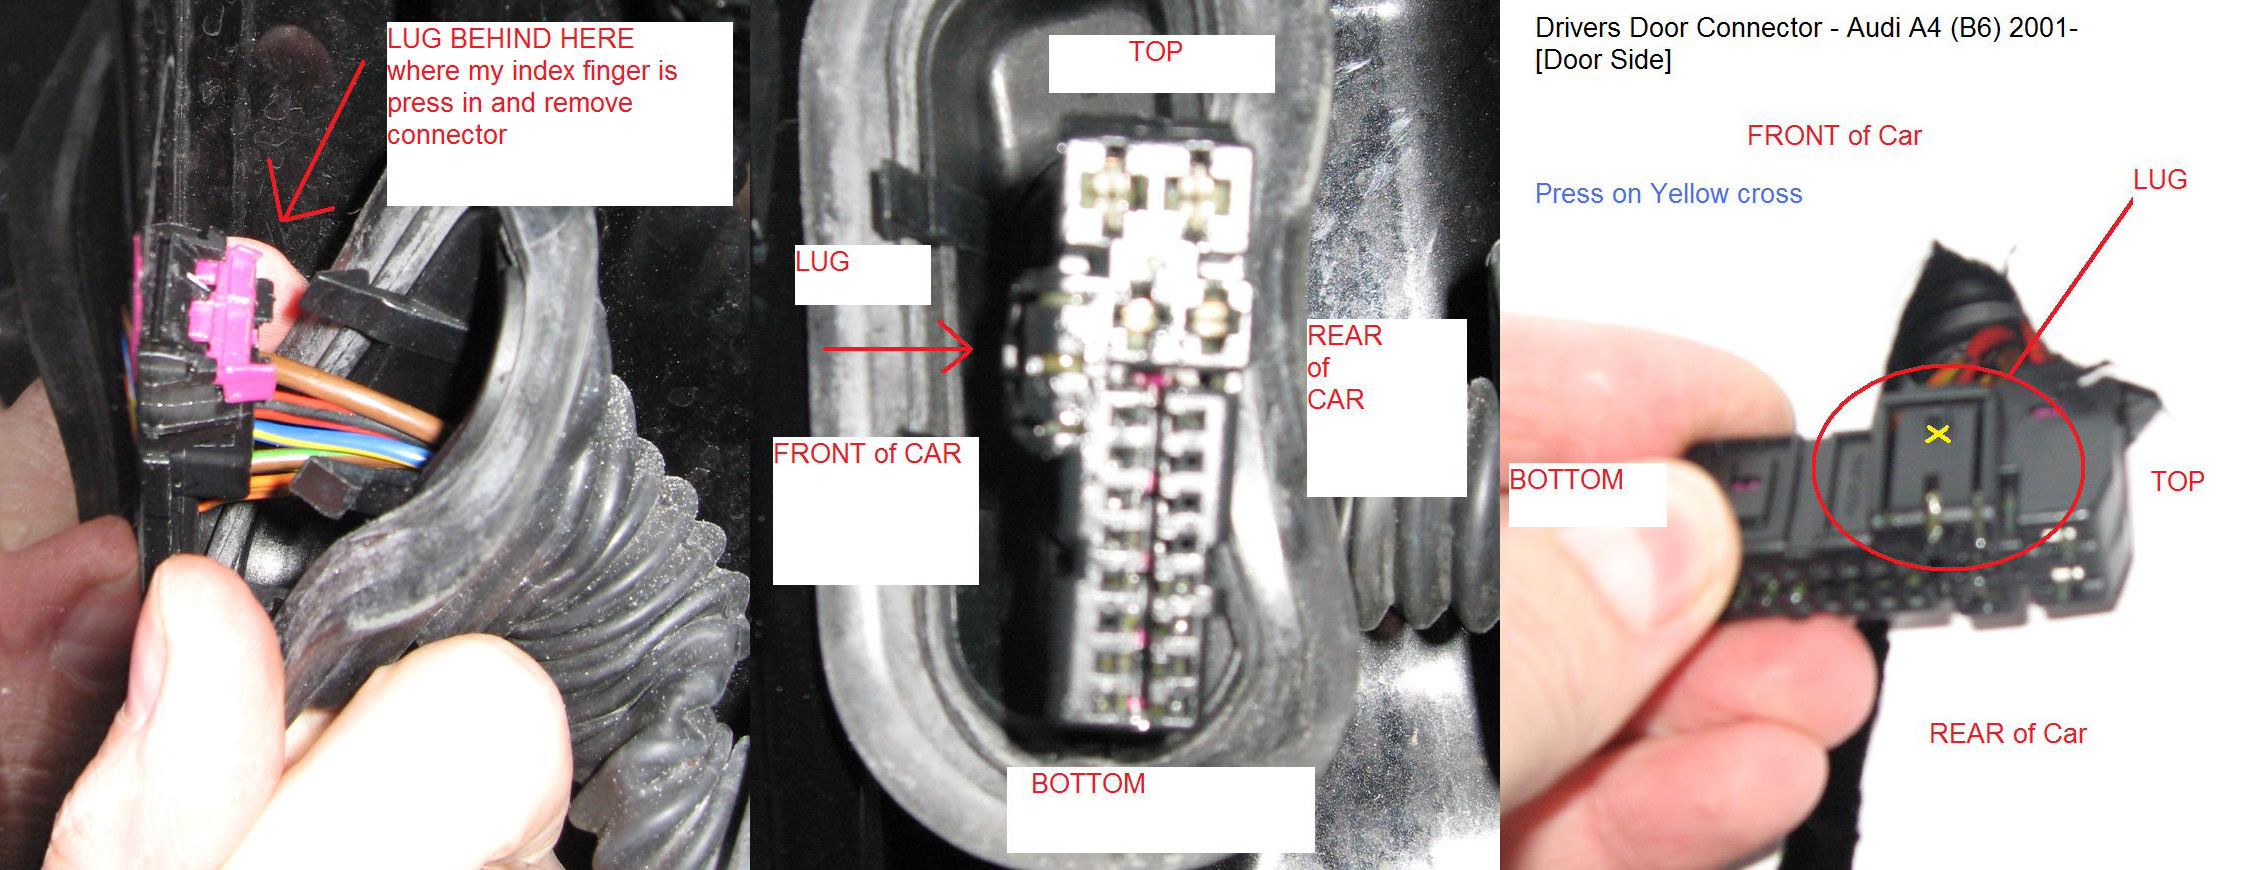 DoorConnector how do i unplug drivers door wiring loom from the car body 2003 Audi A4 Vacuum Line Diagram at bayanpartner.co